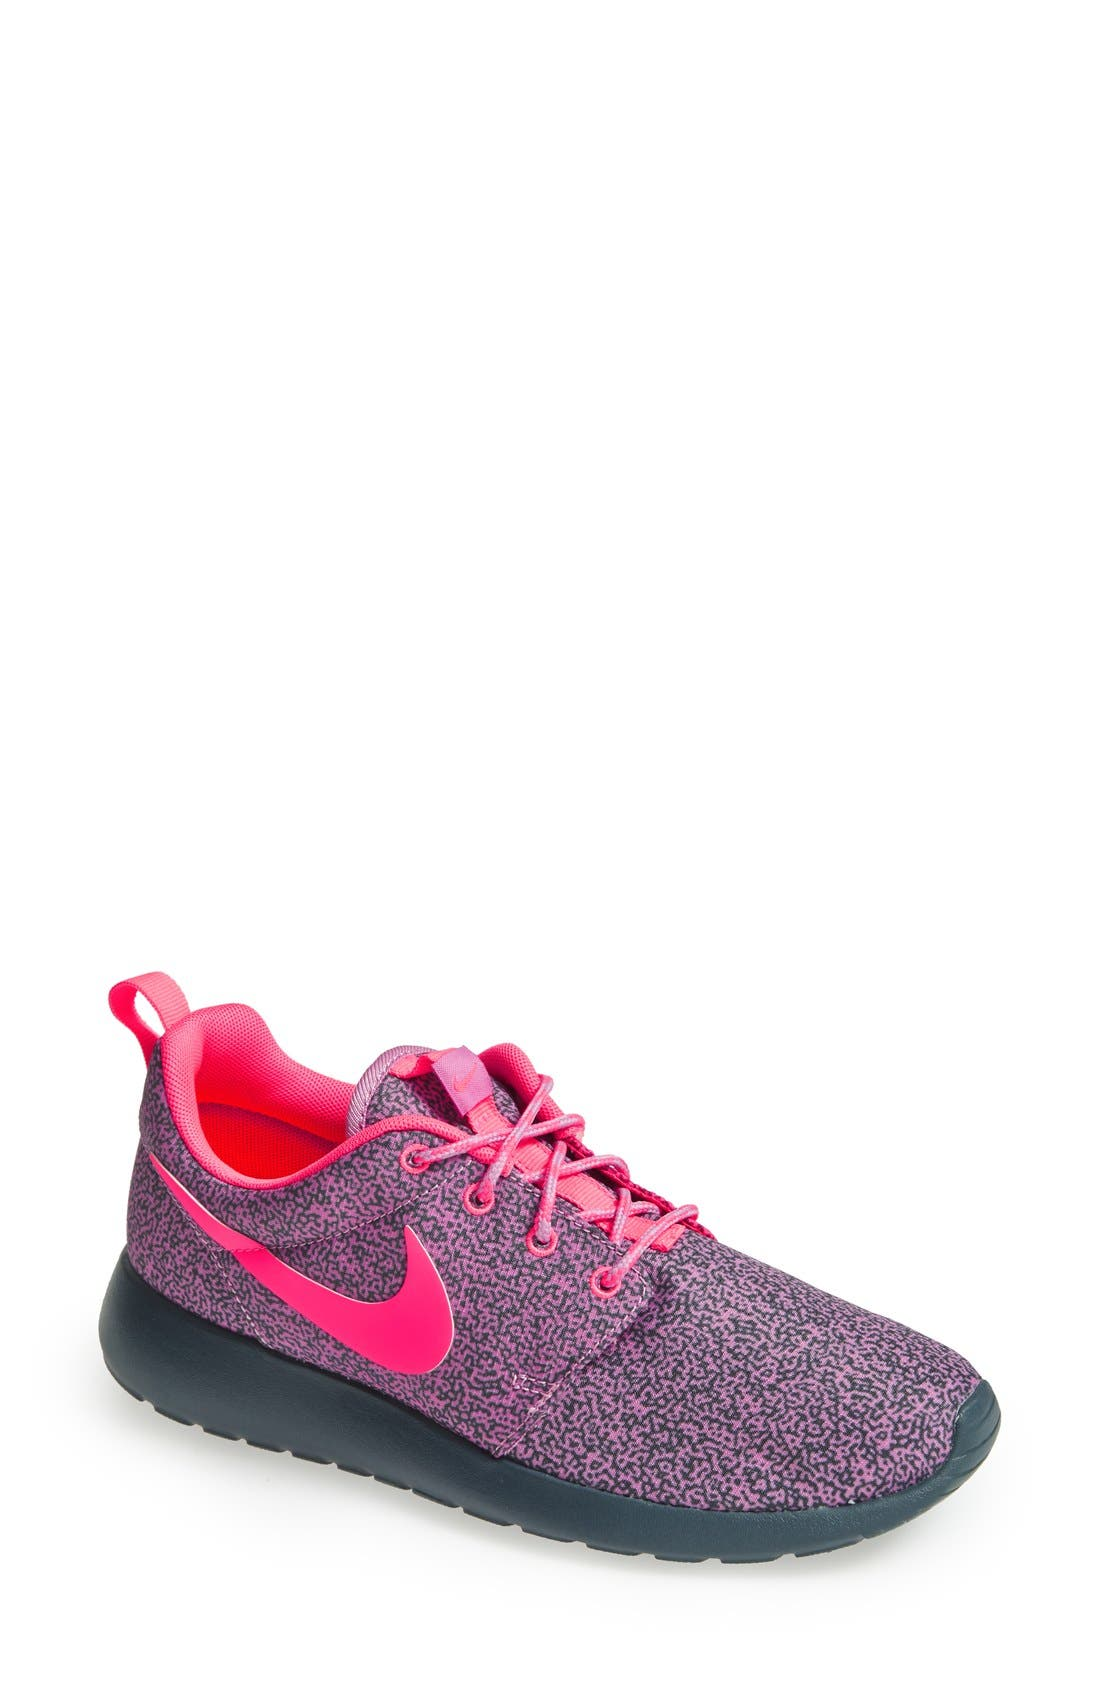 Alternate Image 1 Selected - Nike 'Roshe Run' Print Sneaker (Women)